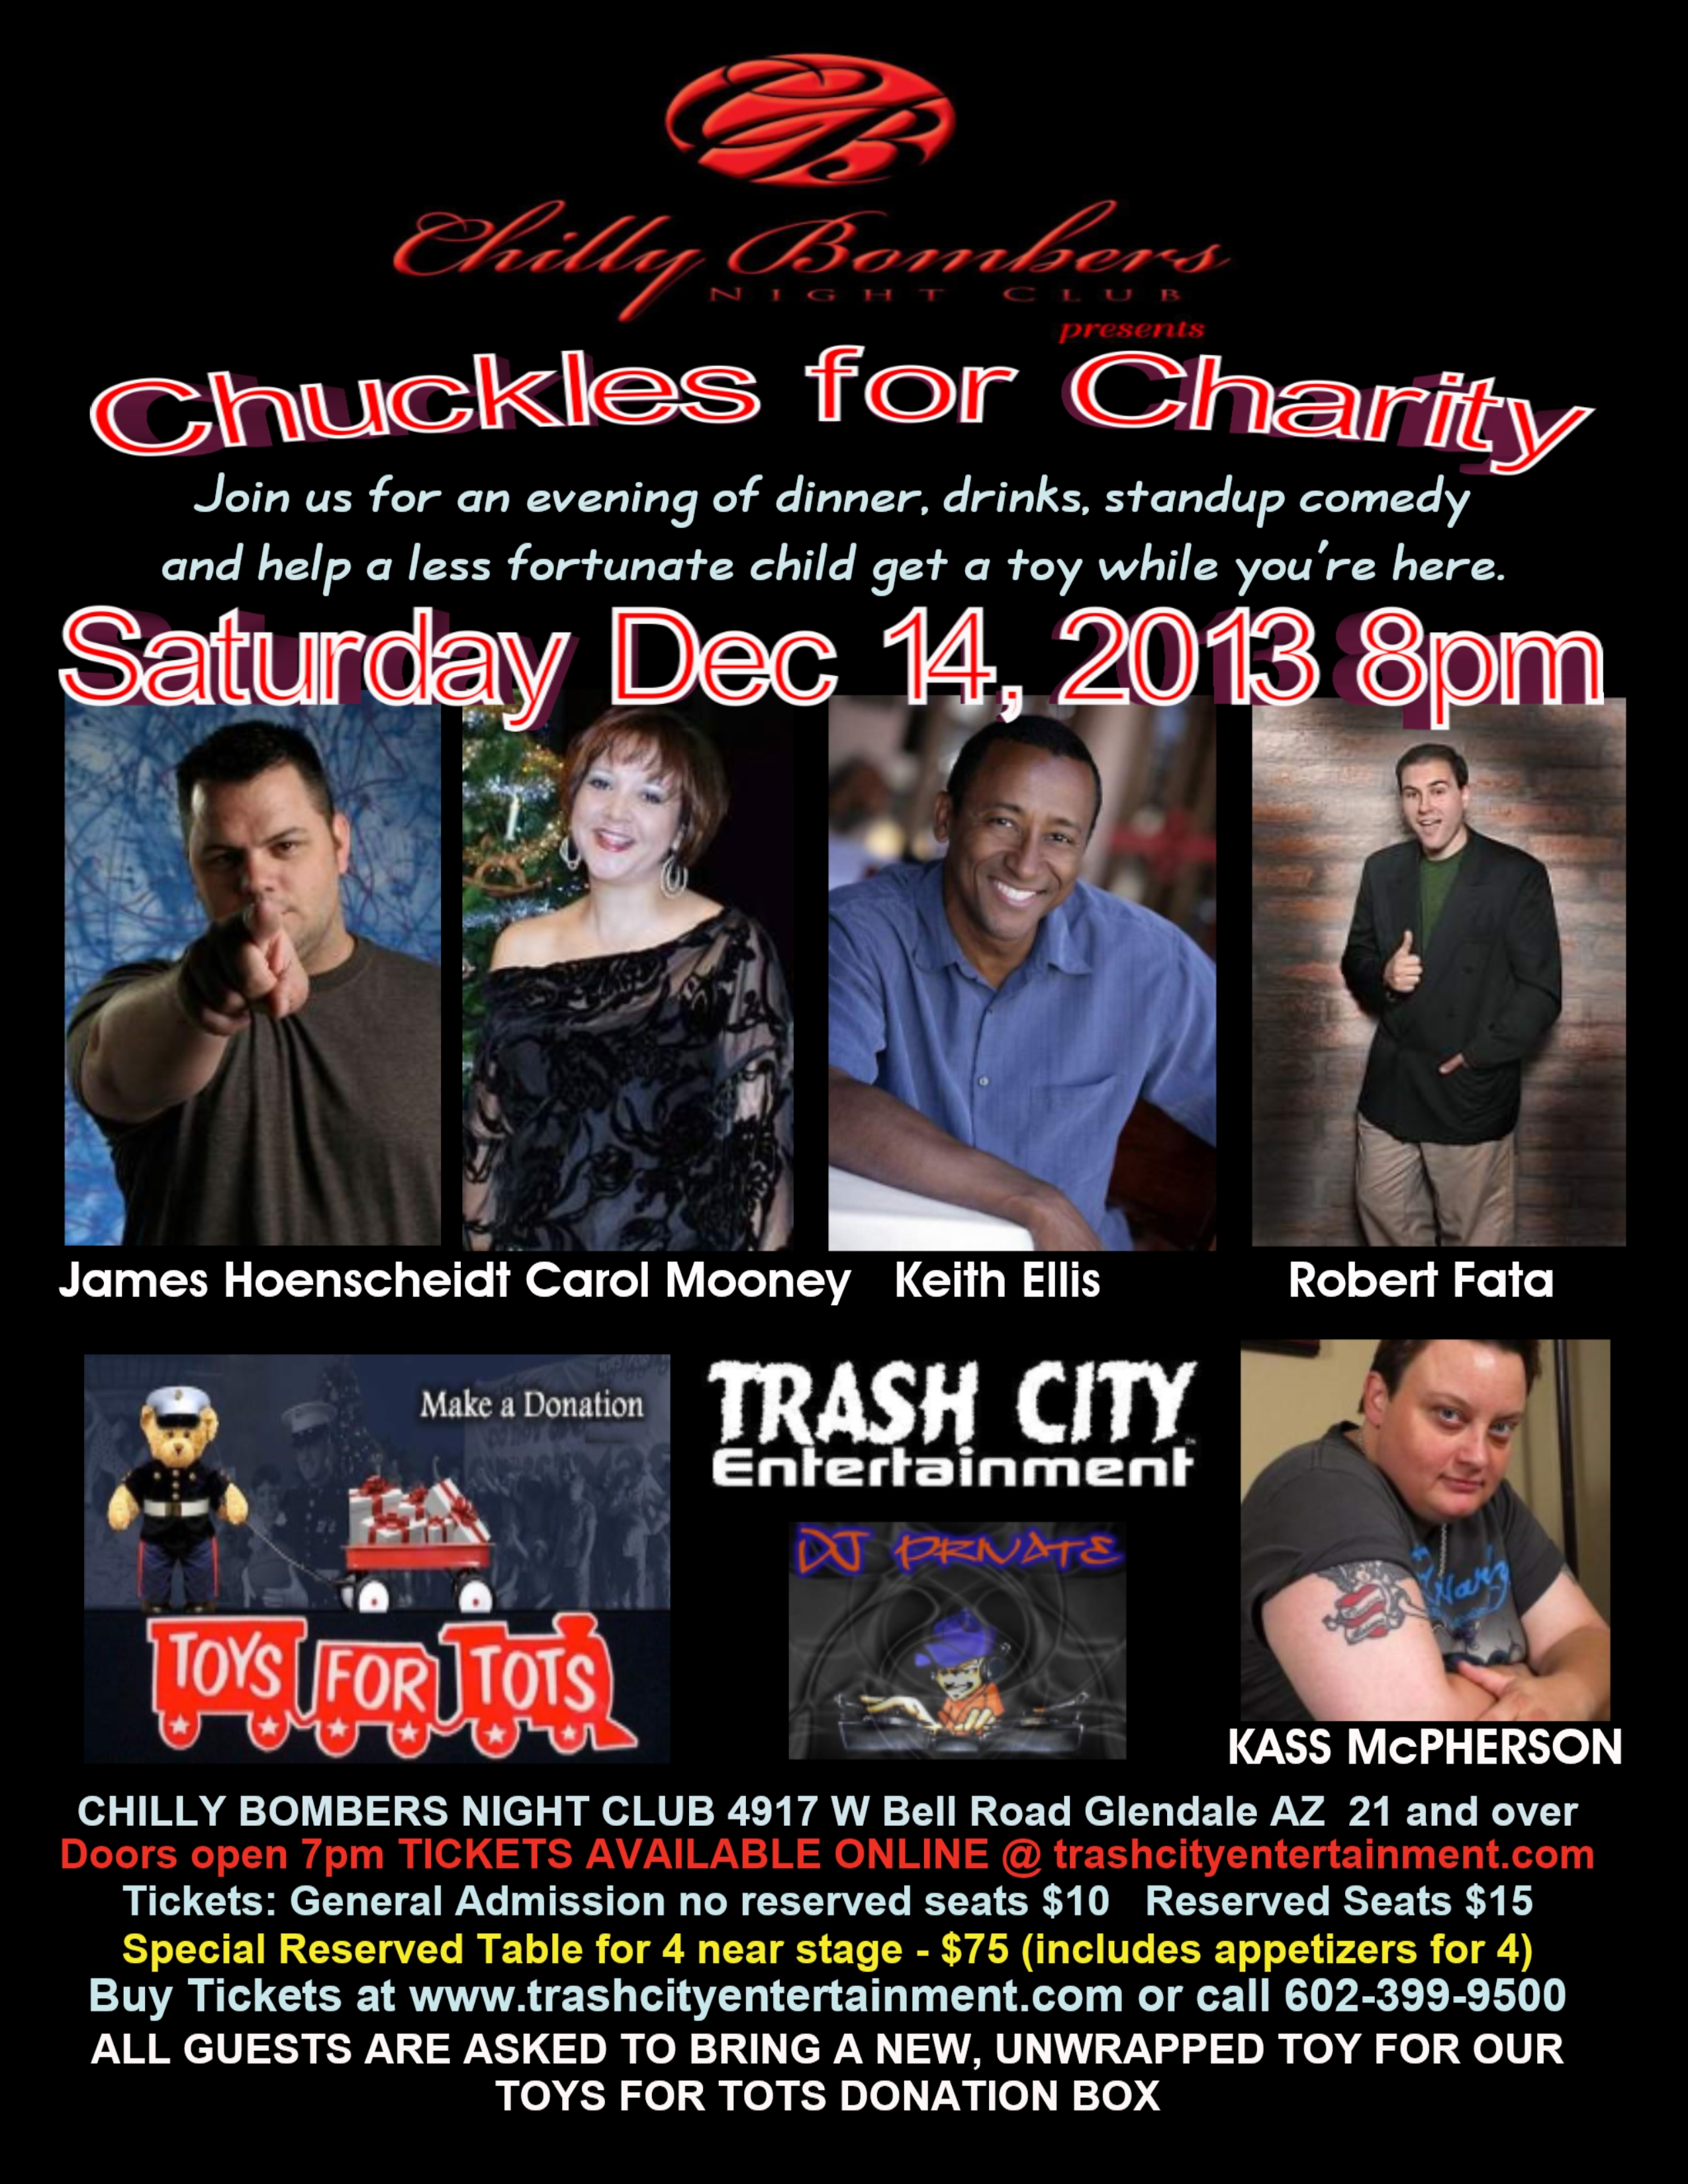 Chuckles for Charity